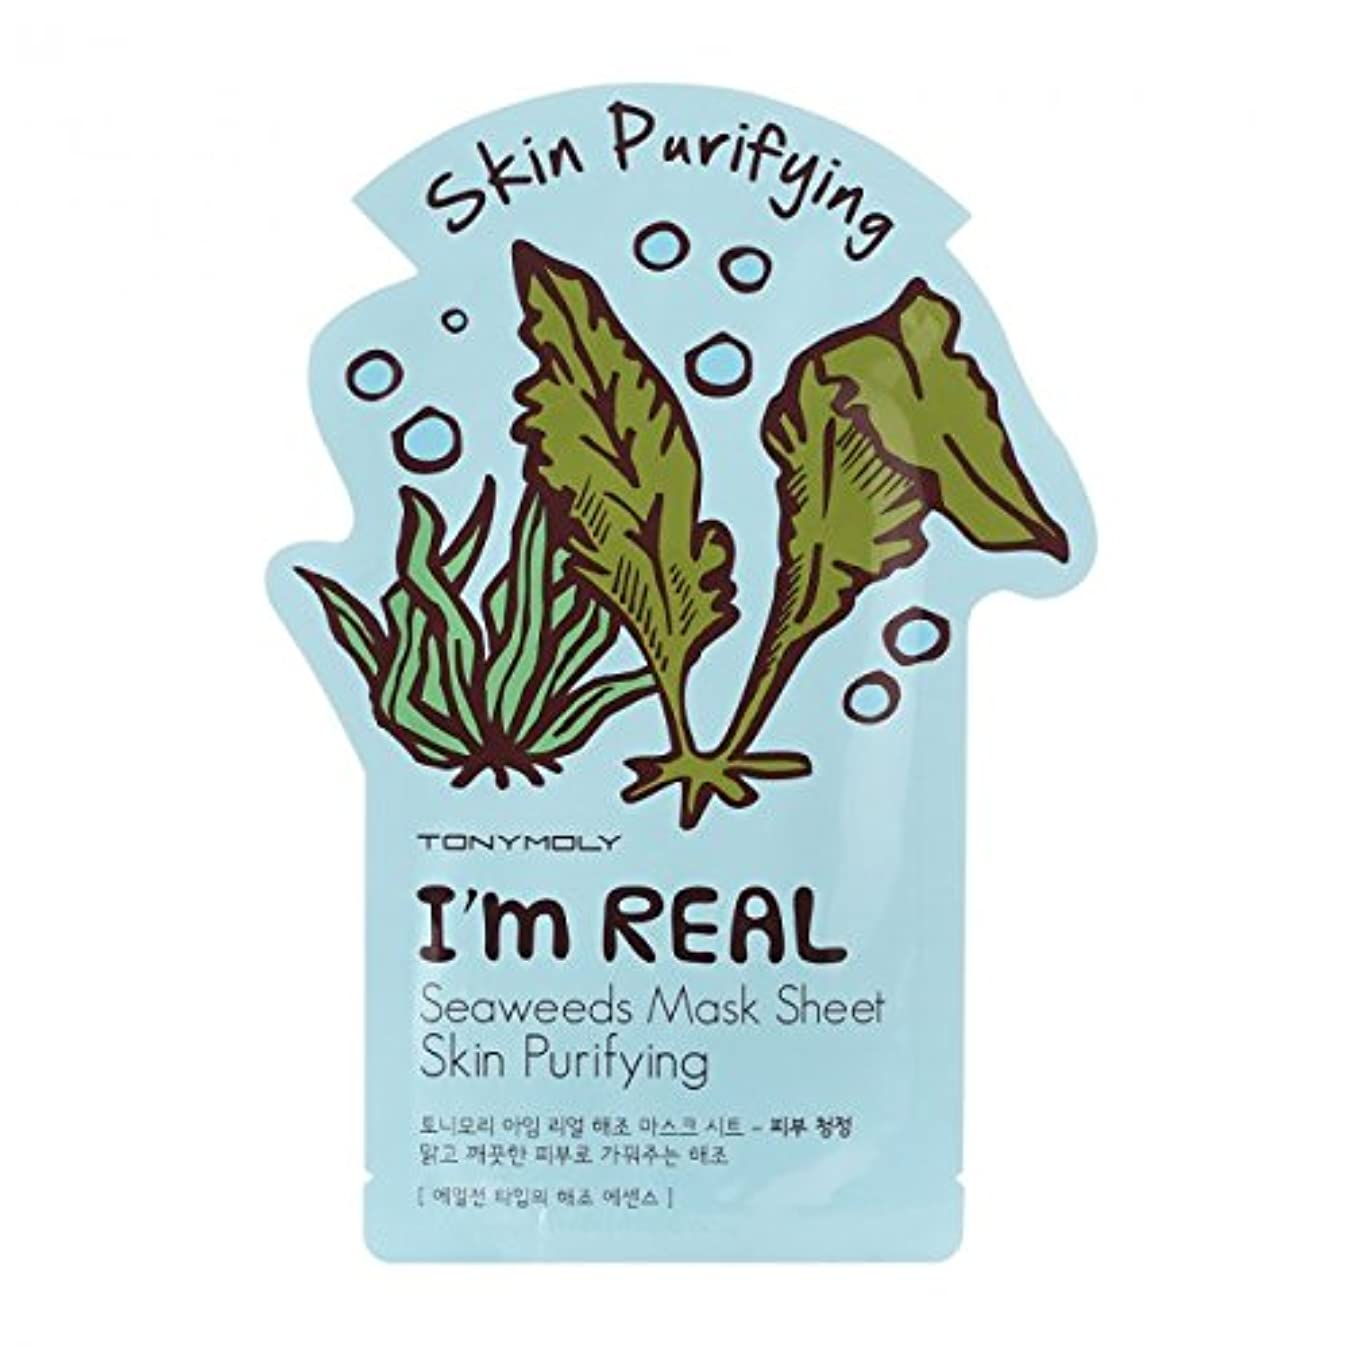 趣味気味の悪い心理的(3 Pack) TONYMOLY I'm Real Seaweeds Mask Sheet Skin Purifying (並行輸入品)